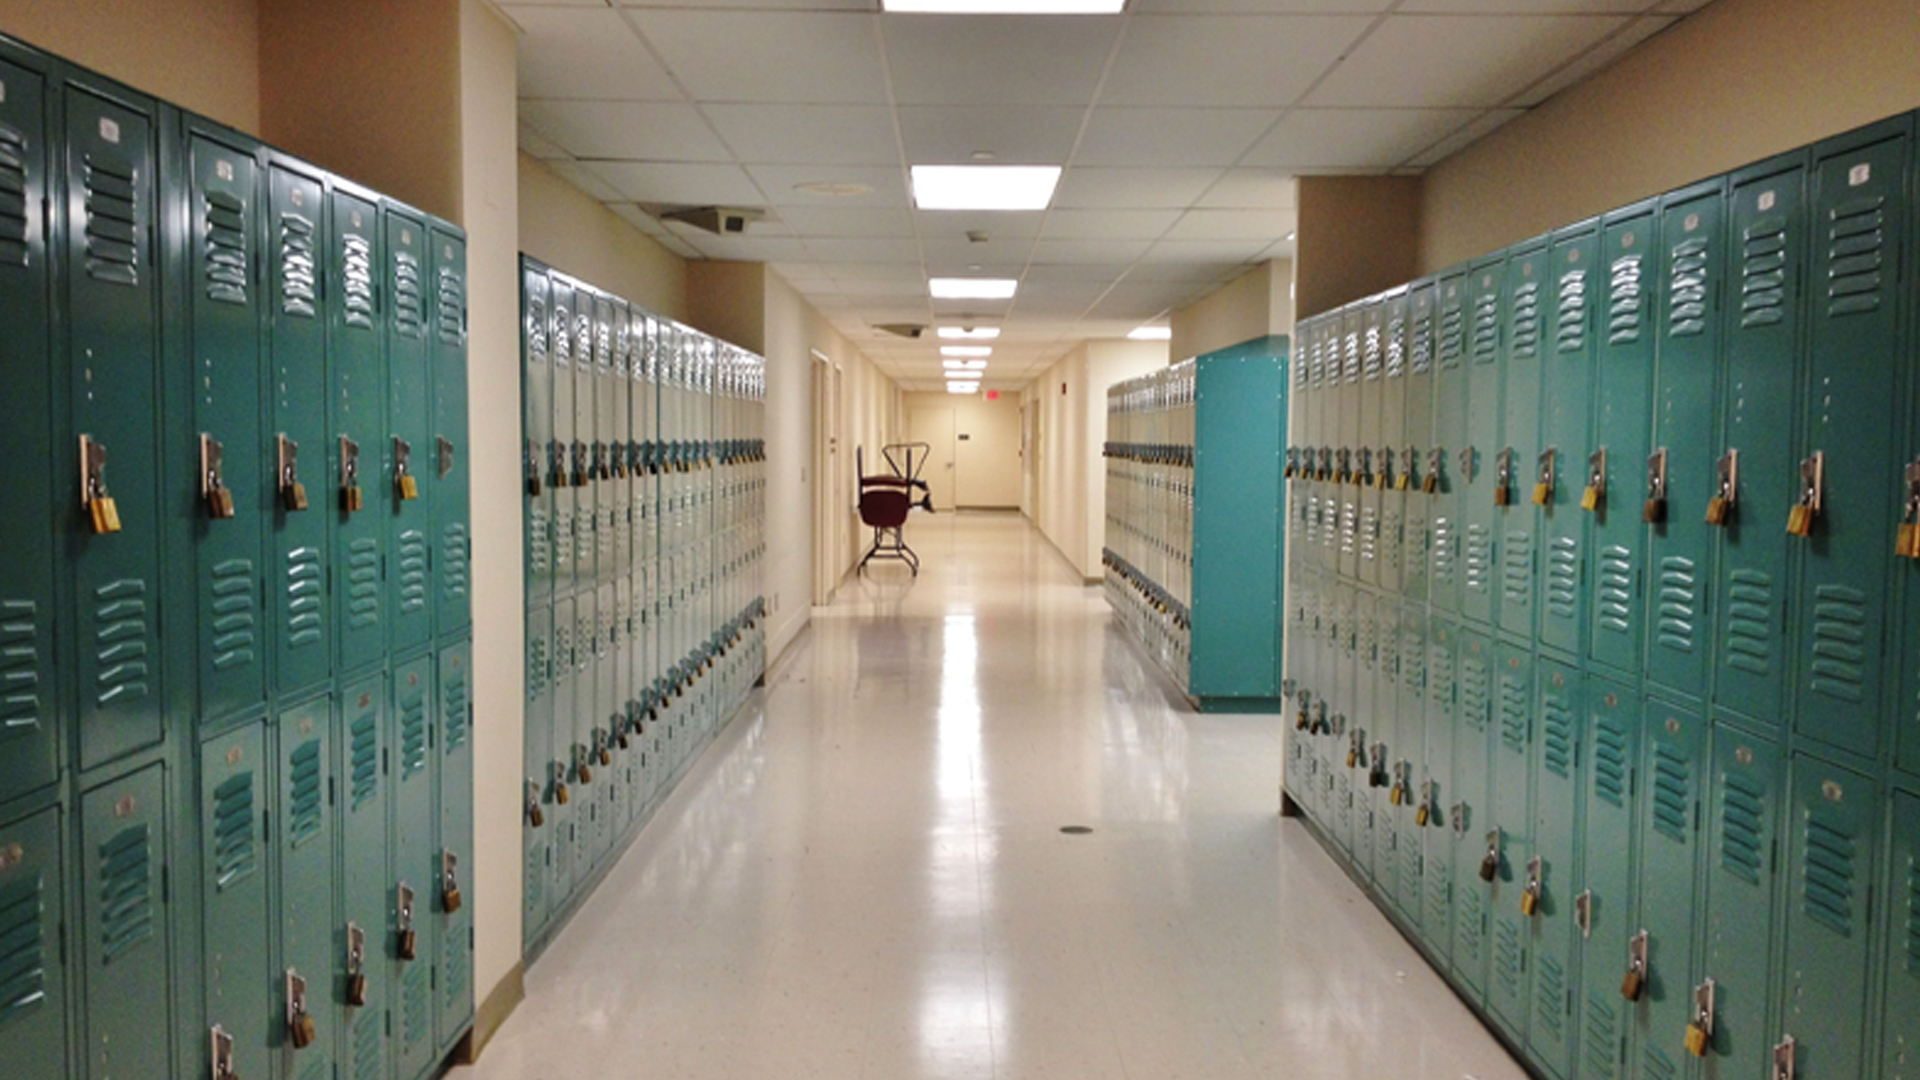 10 Things That Will Totally Remind You of the First Day of School